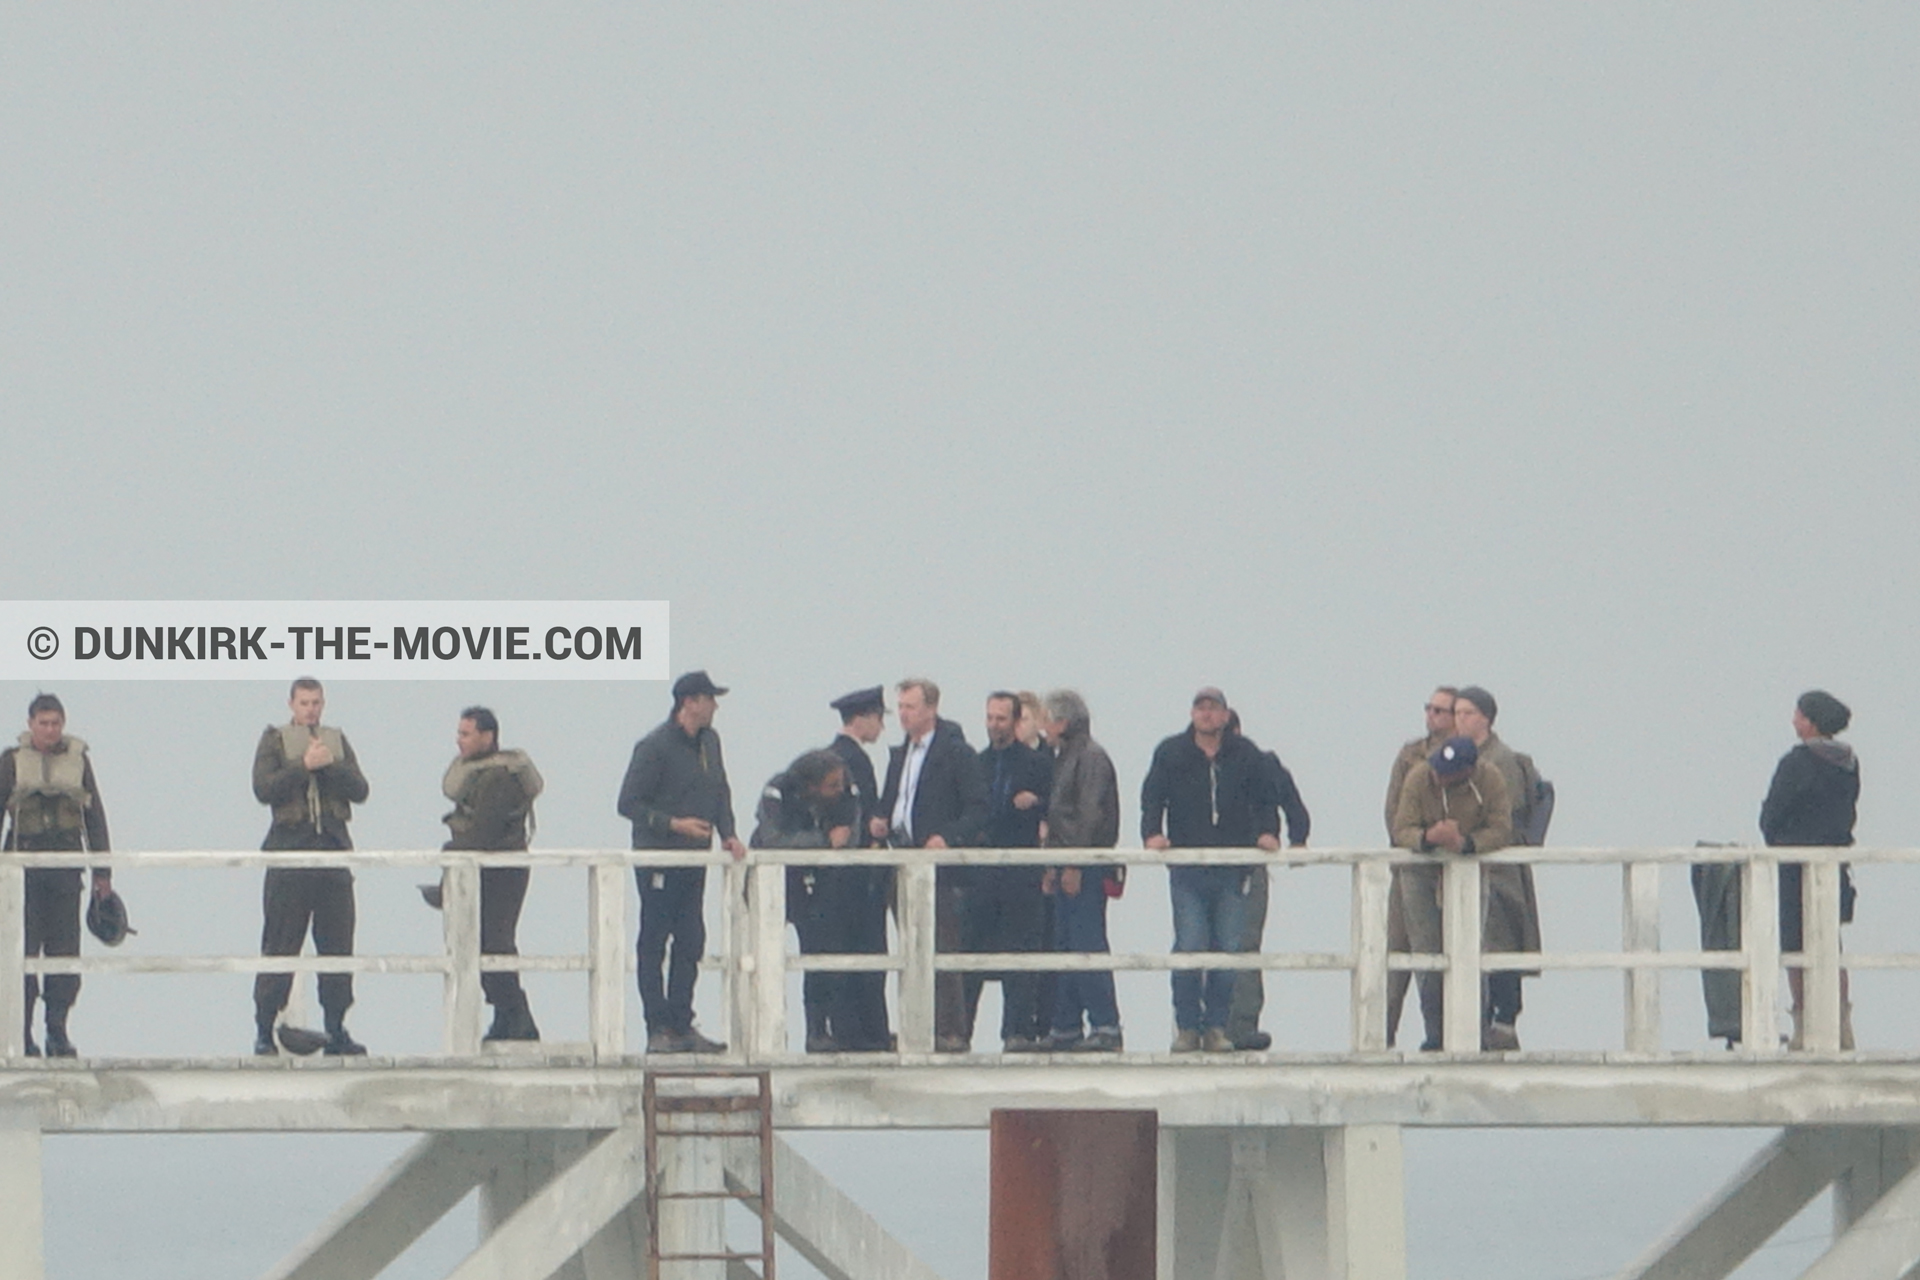 Picture with grey sky, supernumeraries, Hoyte van Hoytema, EST pier, Christopher Nolan, technical team, Nilo Otero,  from behind the scene of the Dunkirk movie by Nolan